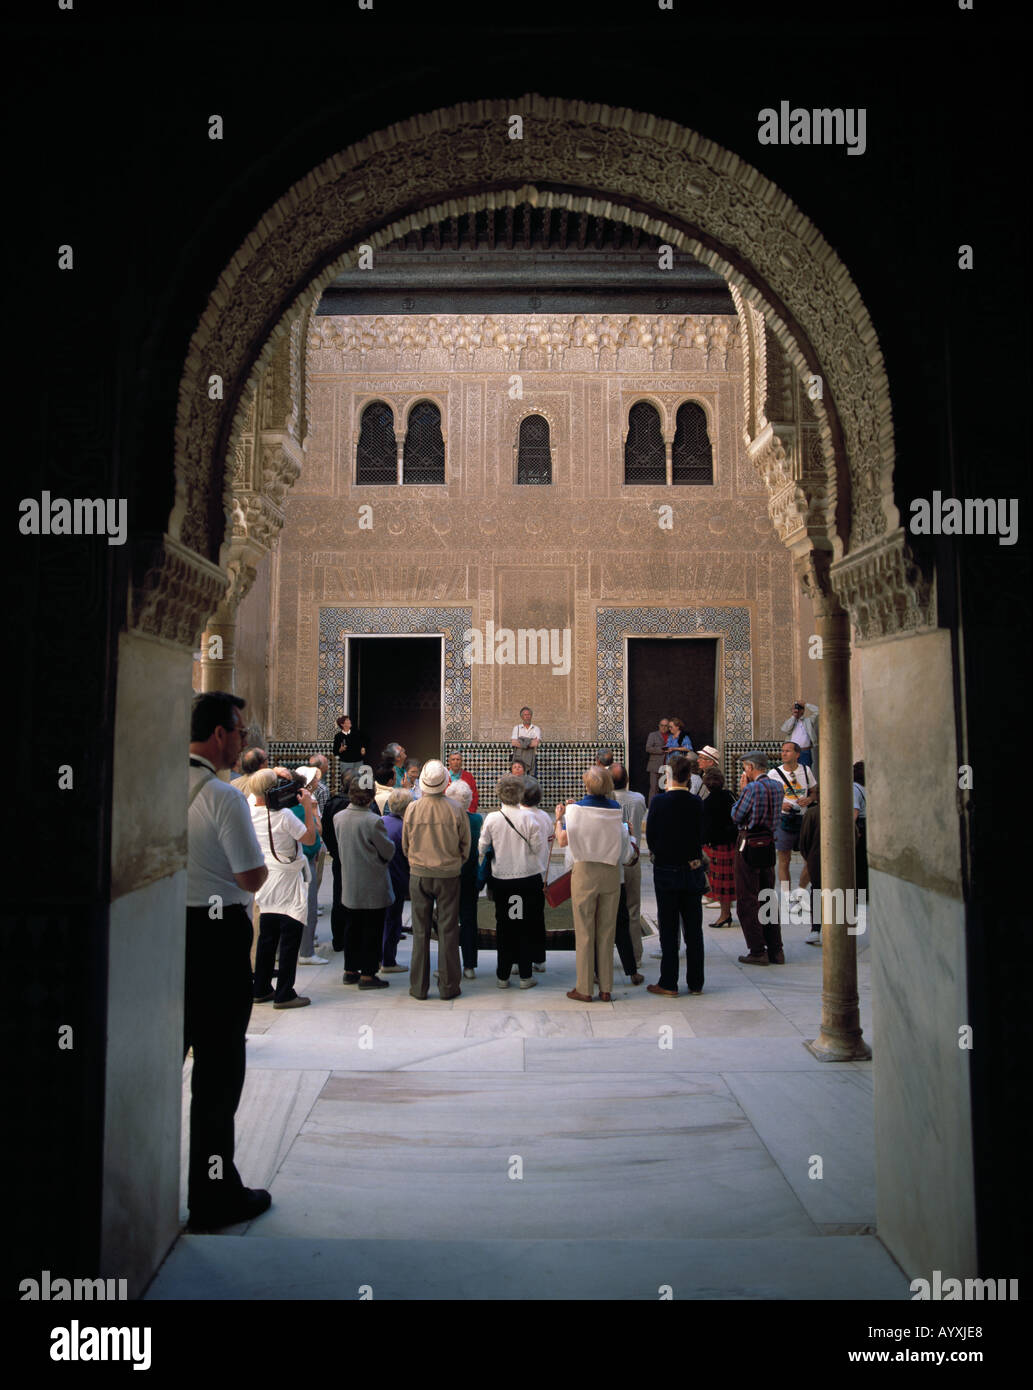 tourists group, group of tourists, Spain, E-Granada, Andalusia, Alhambra, UNESCO World Heritage Site - Stock Image